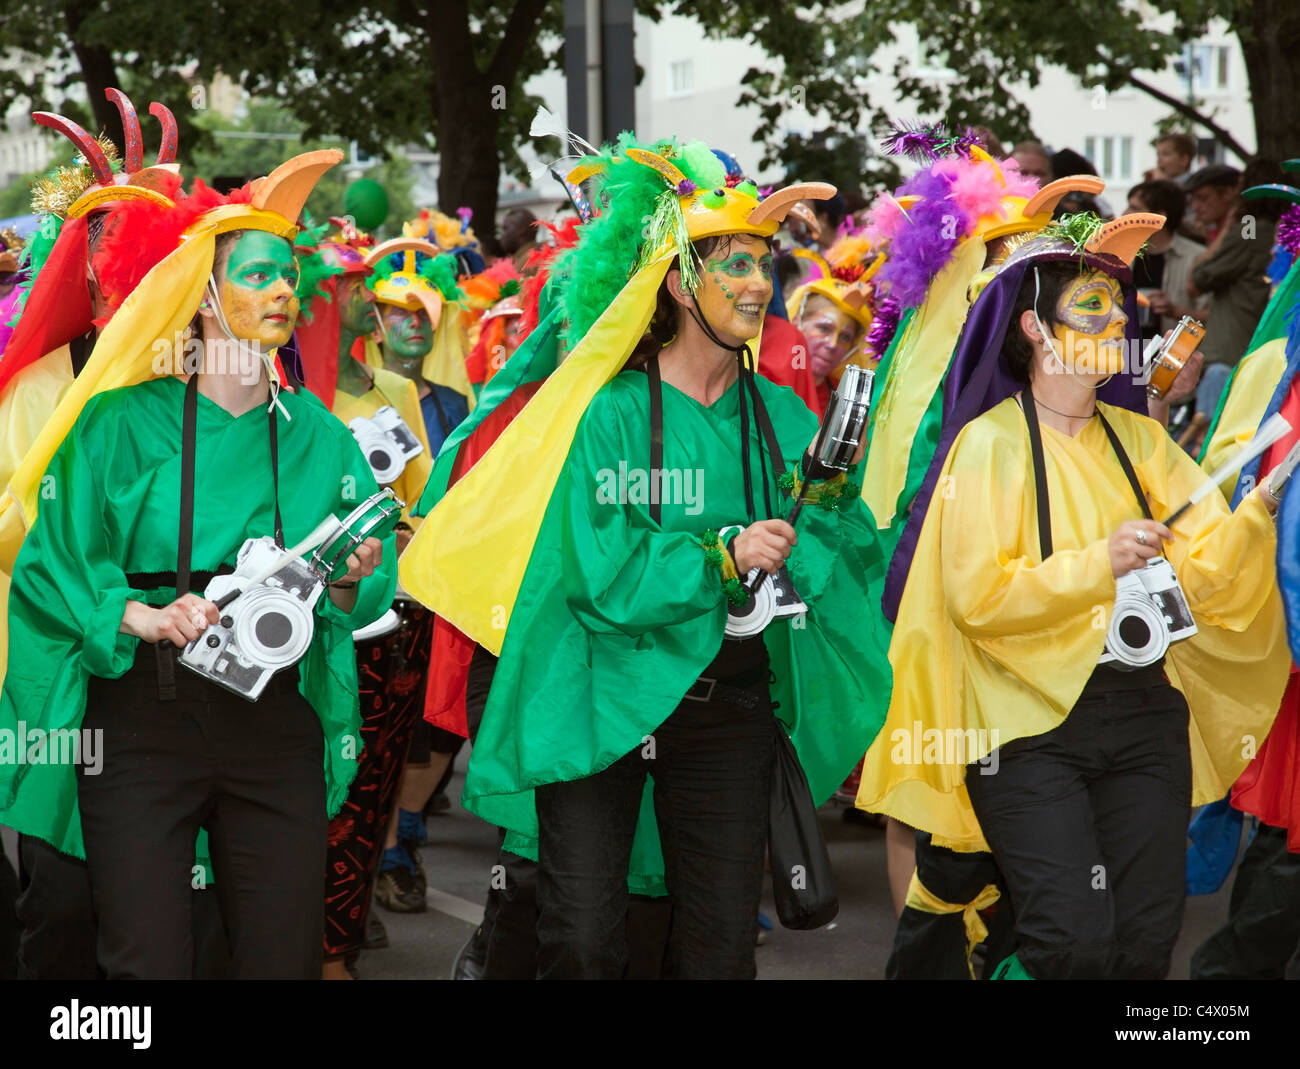 Carnival of Cultures, Berlin 2011 - Stock Image